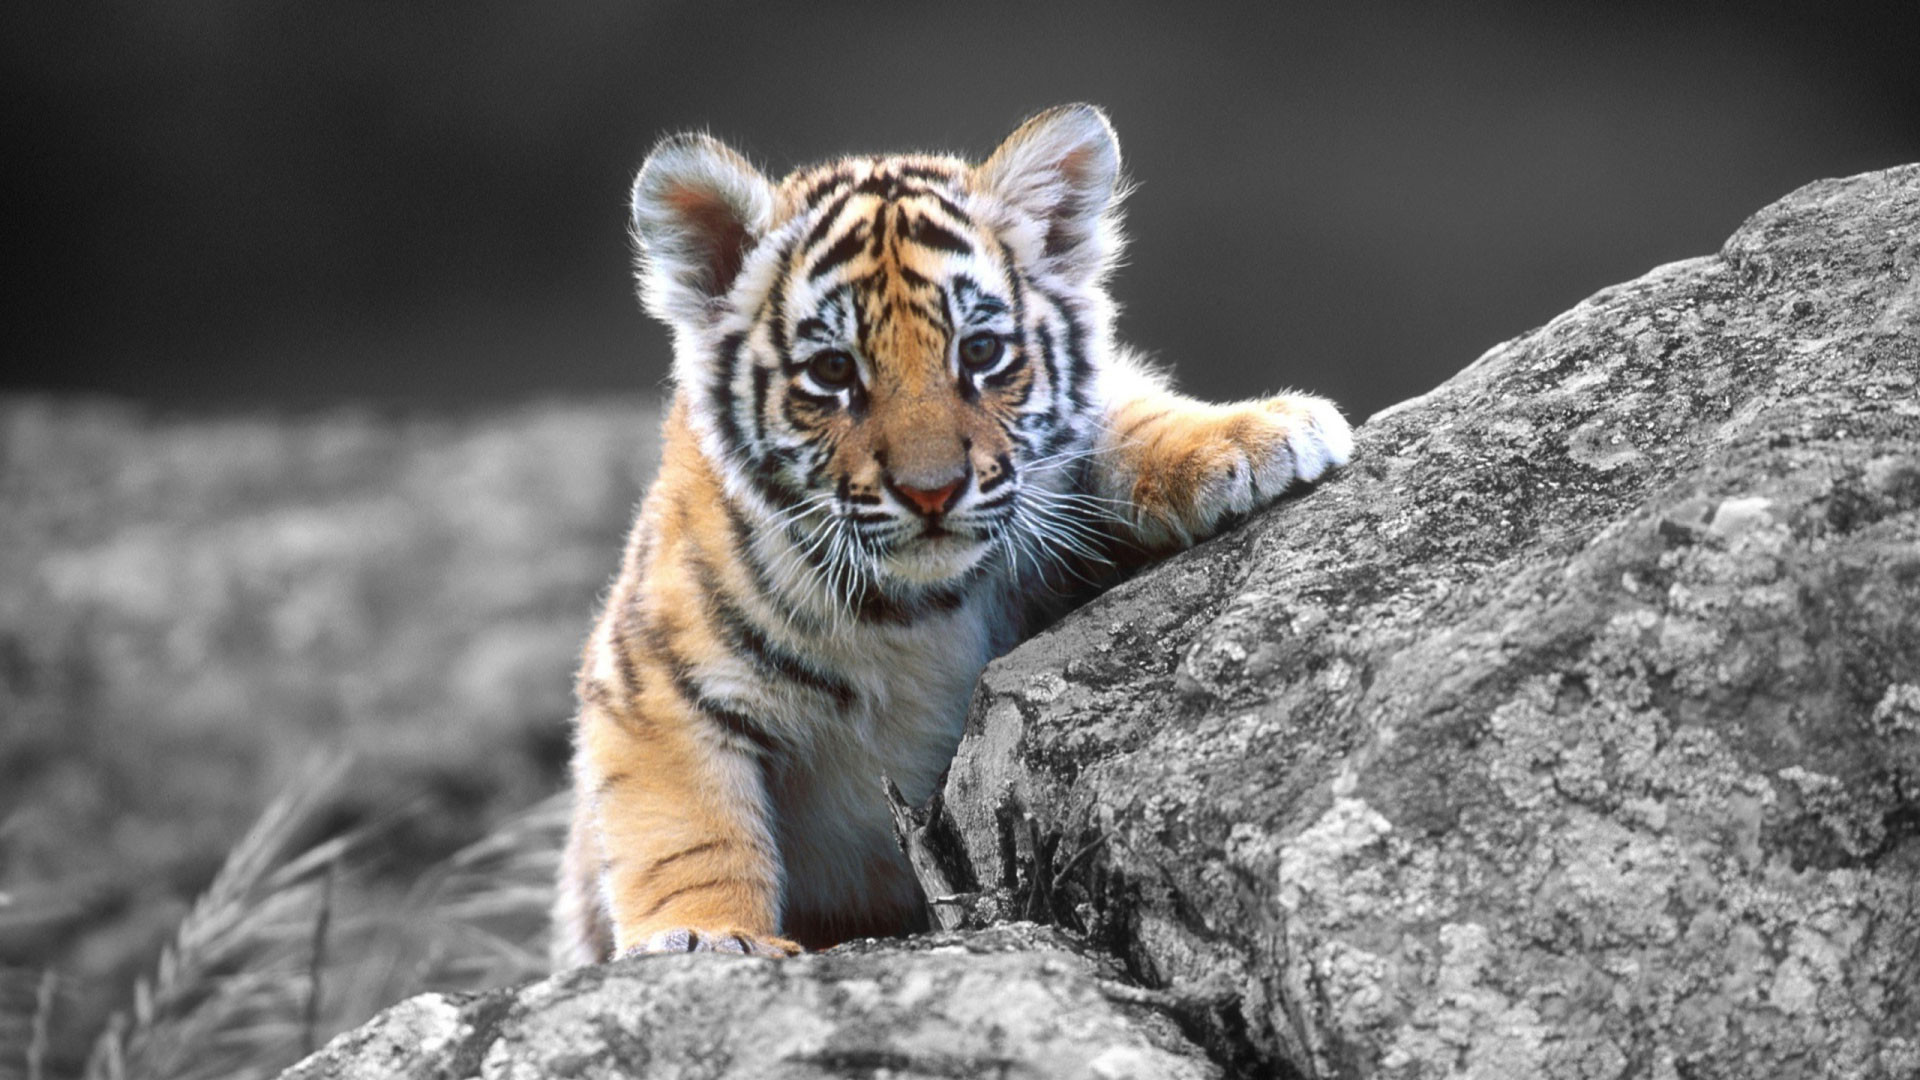 Cute Baby Tigers Wallpapers Widescreen 2 HD Wallpapers